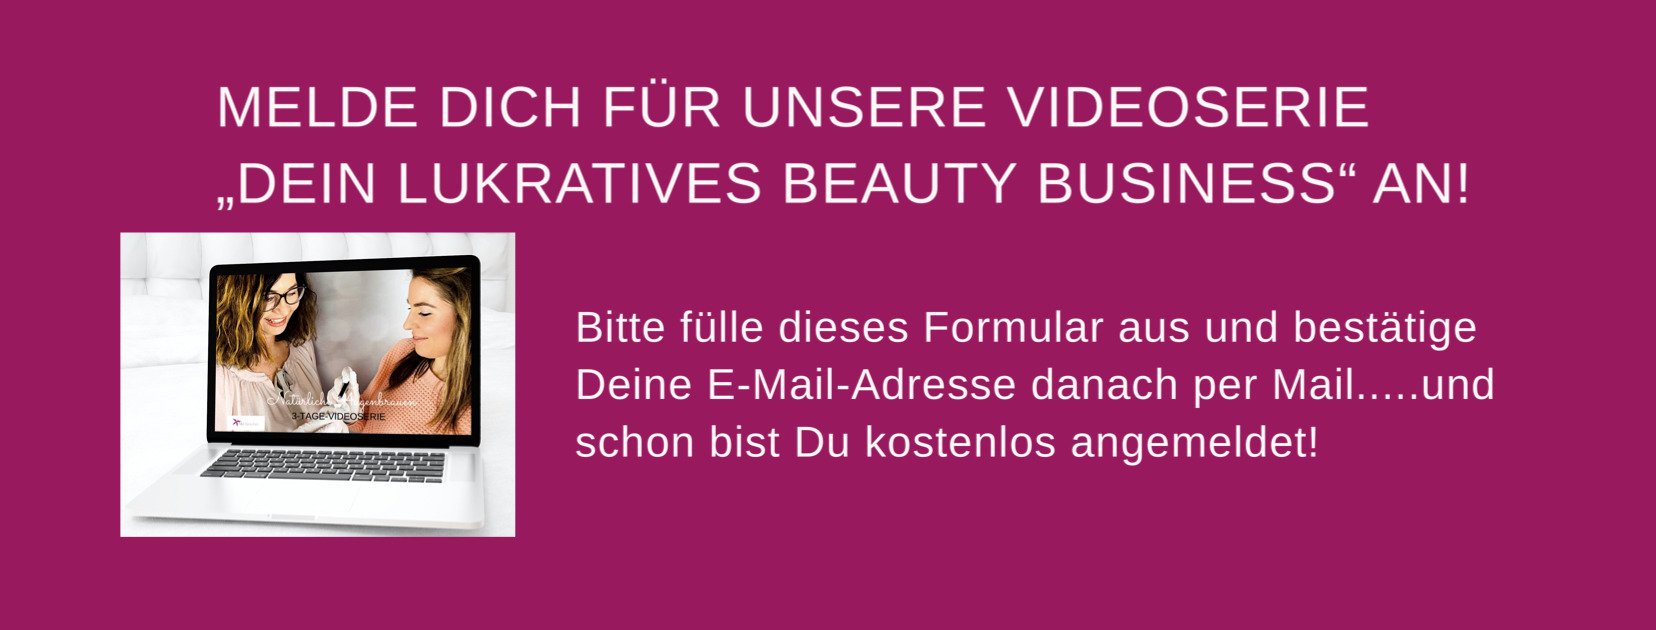 Videoserie-lukratives-business